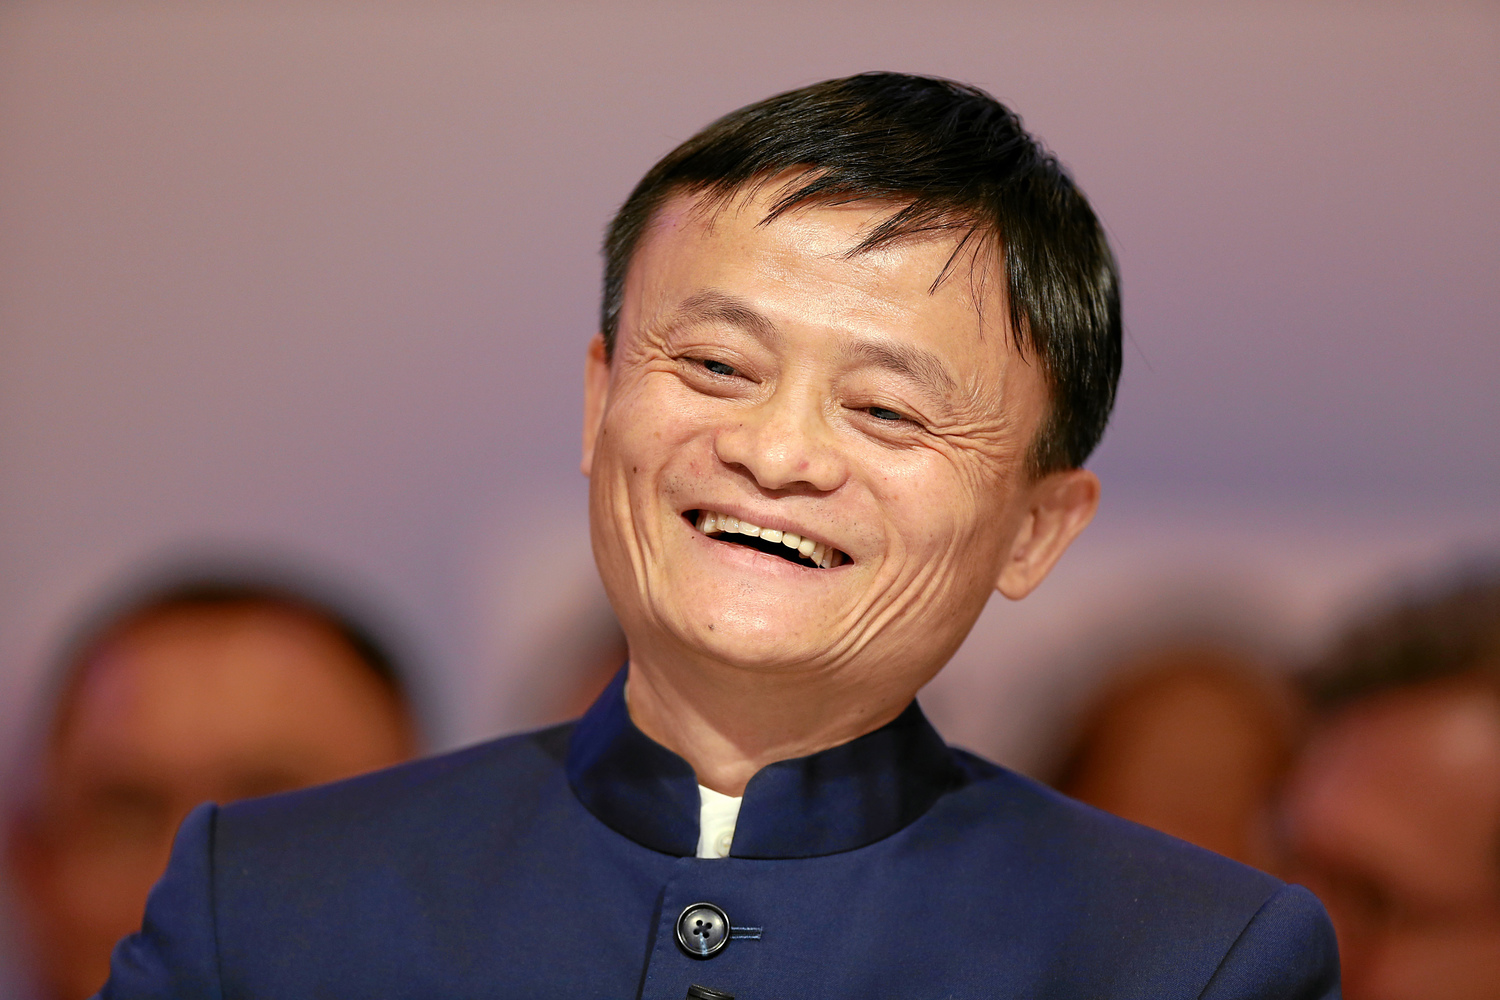 Image result for Jack ma, photos